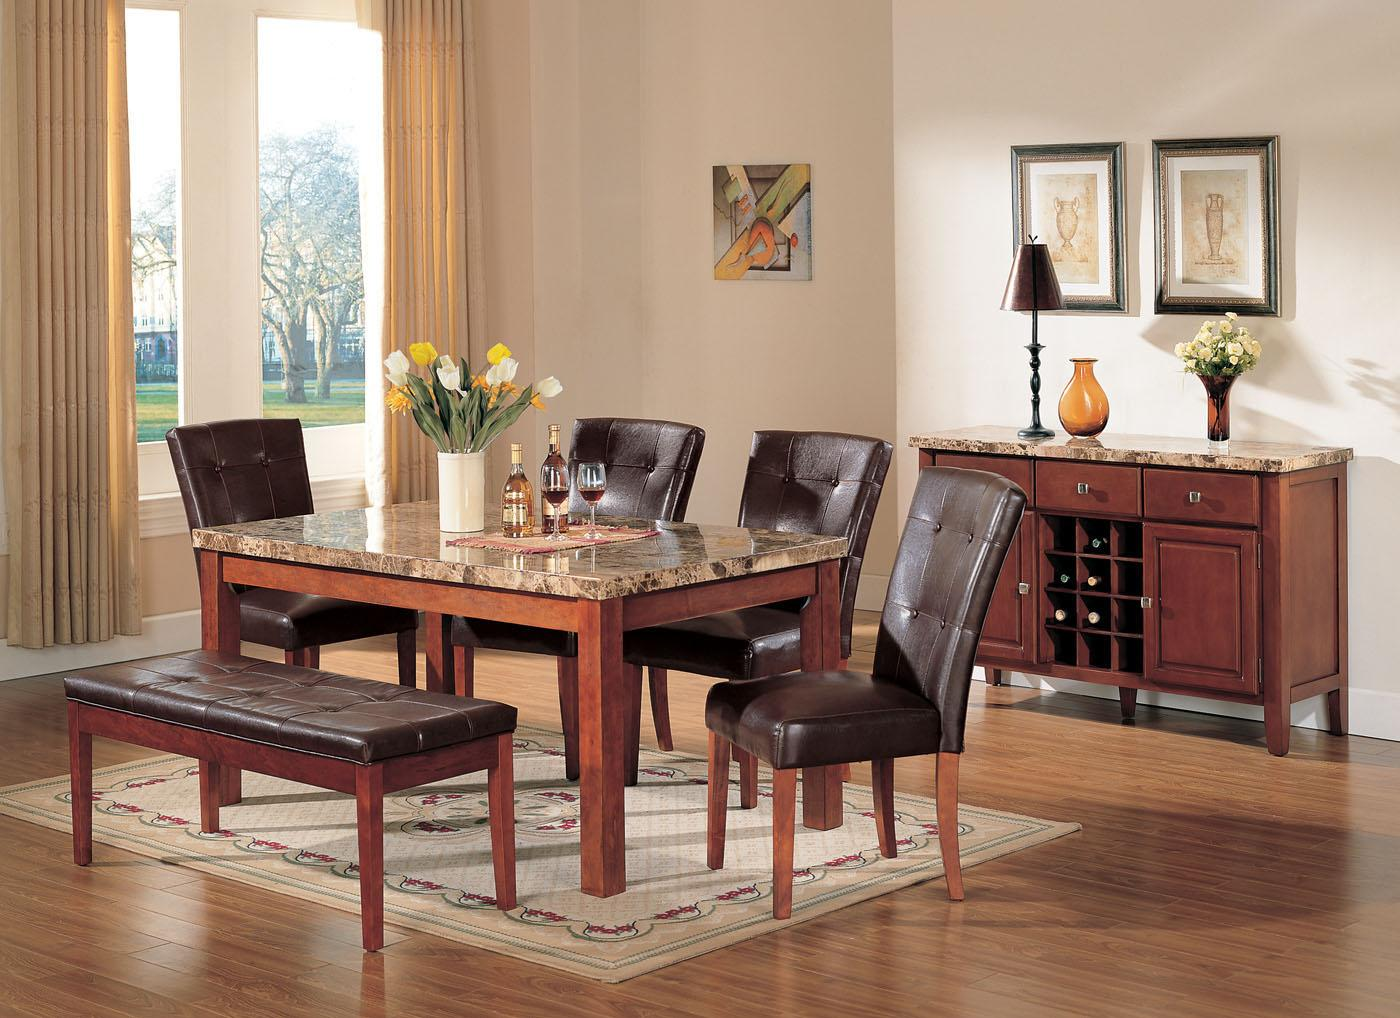 Acme Furniture Bologna Bologna Dining Set - Item Number: 0745-07045SM+4x17046+07056